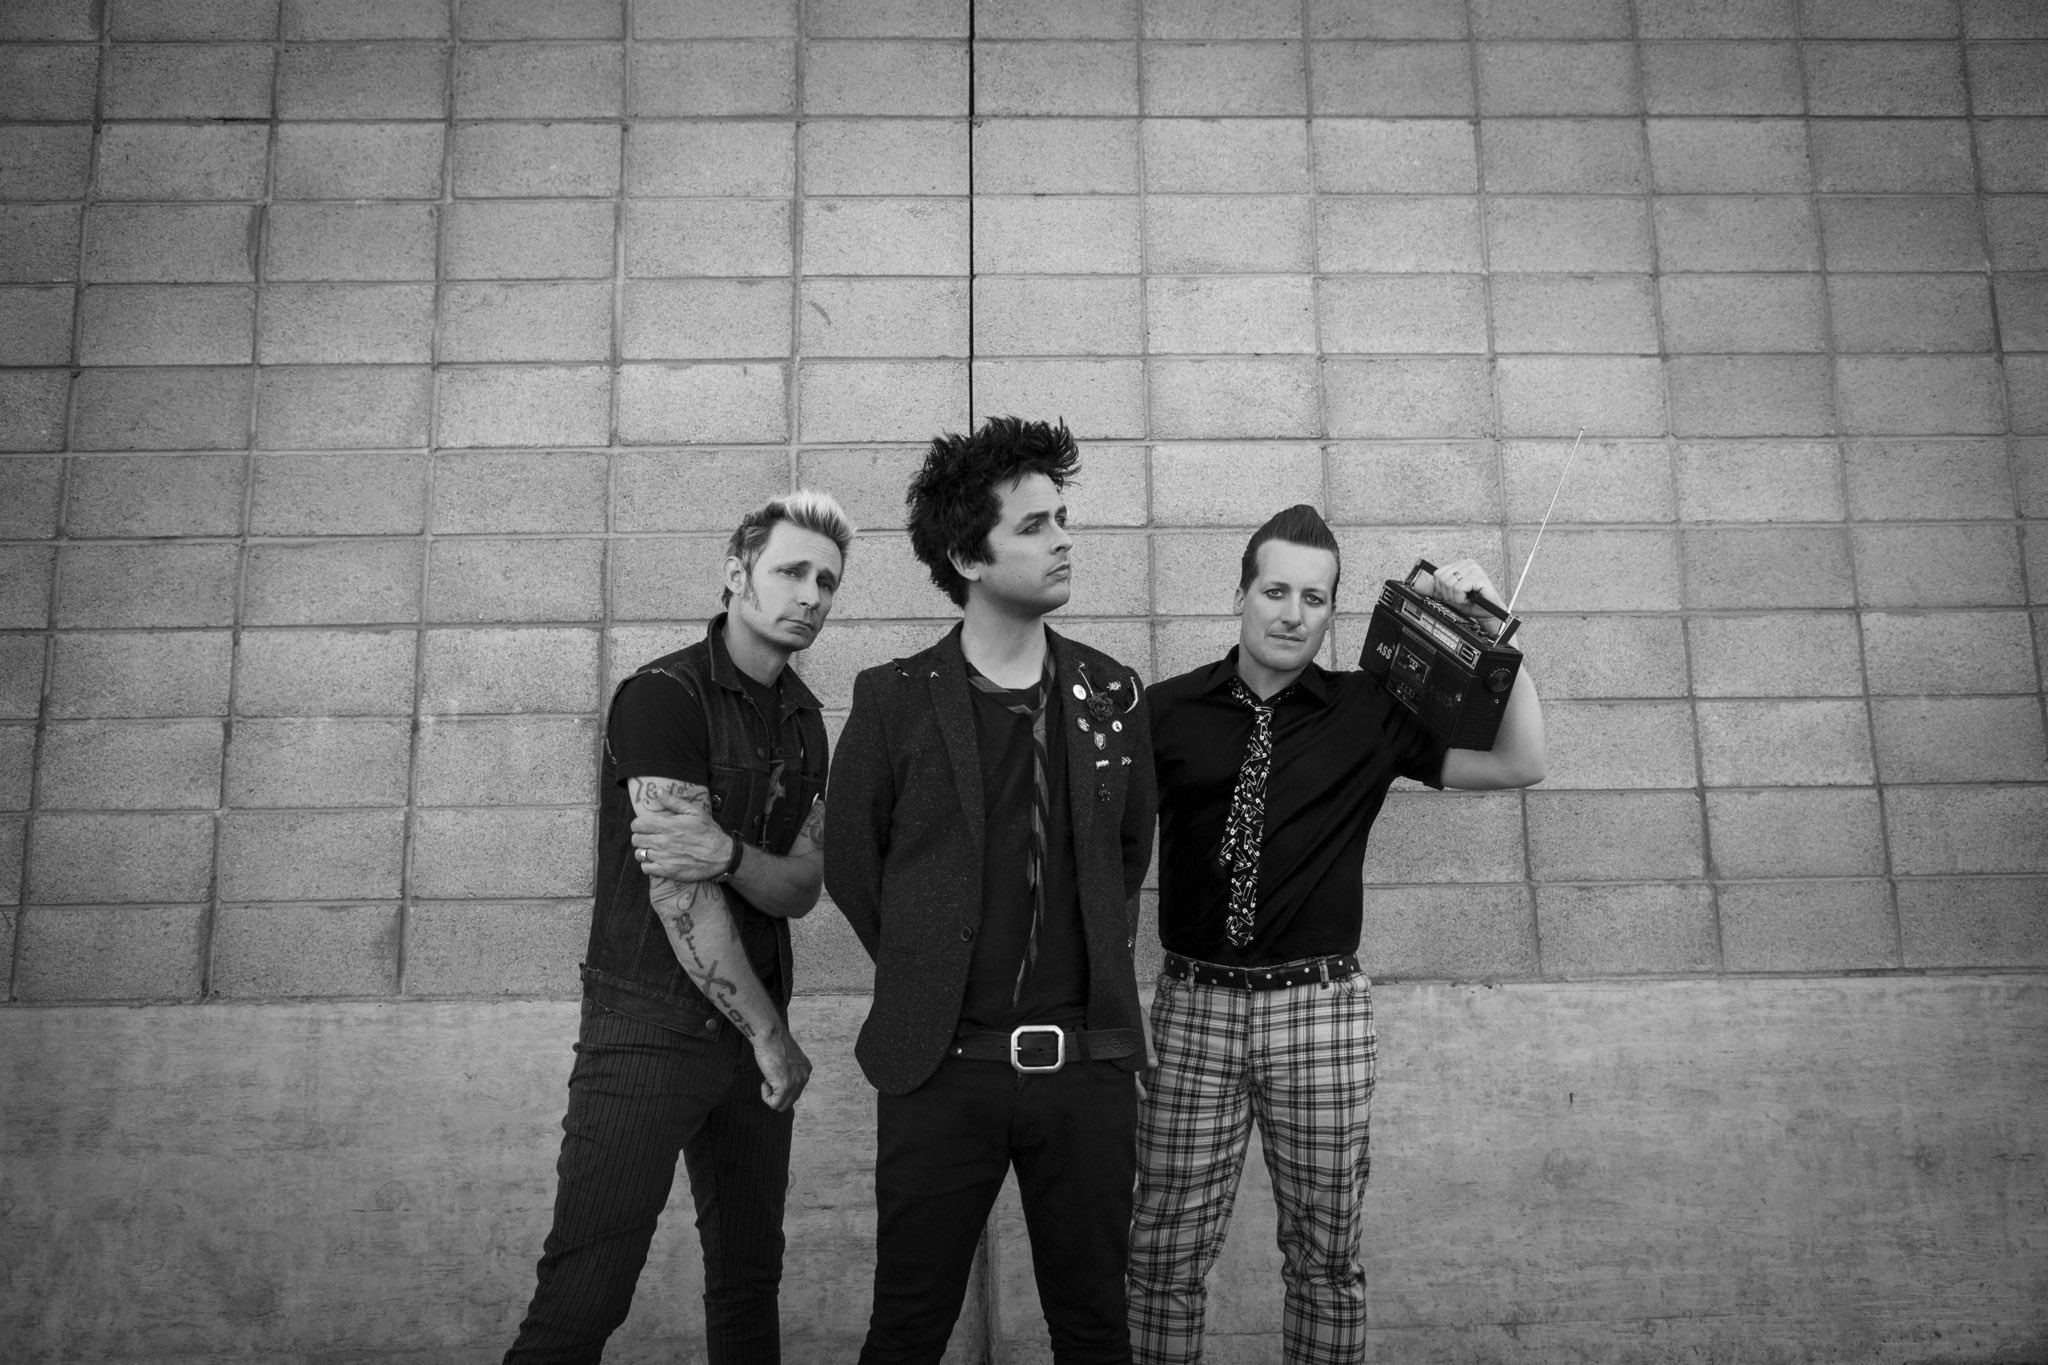 It's here! Watch @GreenDay's latest music video 'Revolution Radio!' ��  https://t.co/UyyO05yIi6 https://t.co/N4VdbwVJty